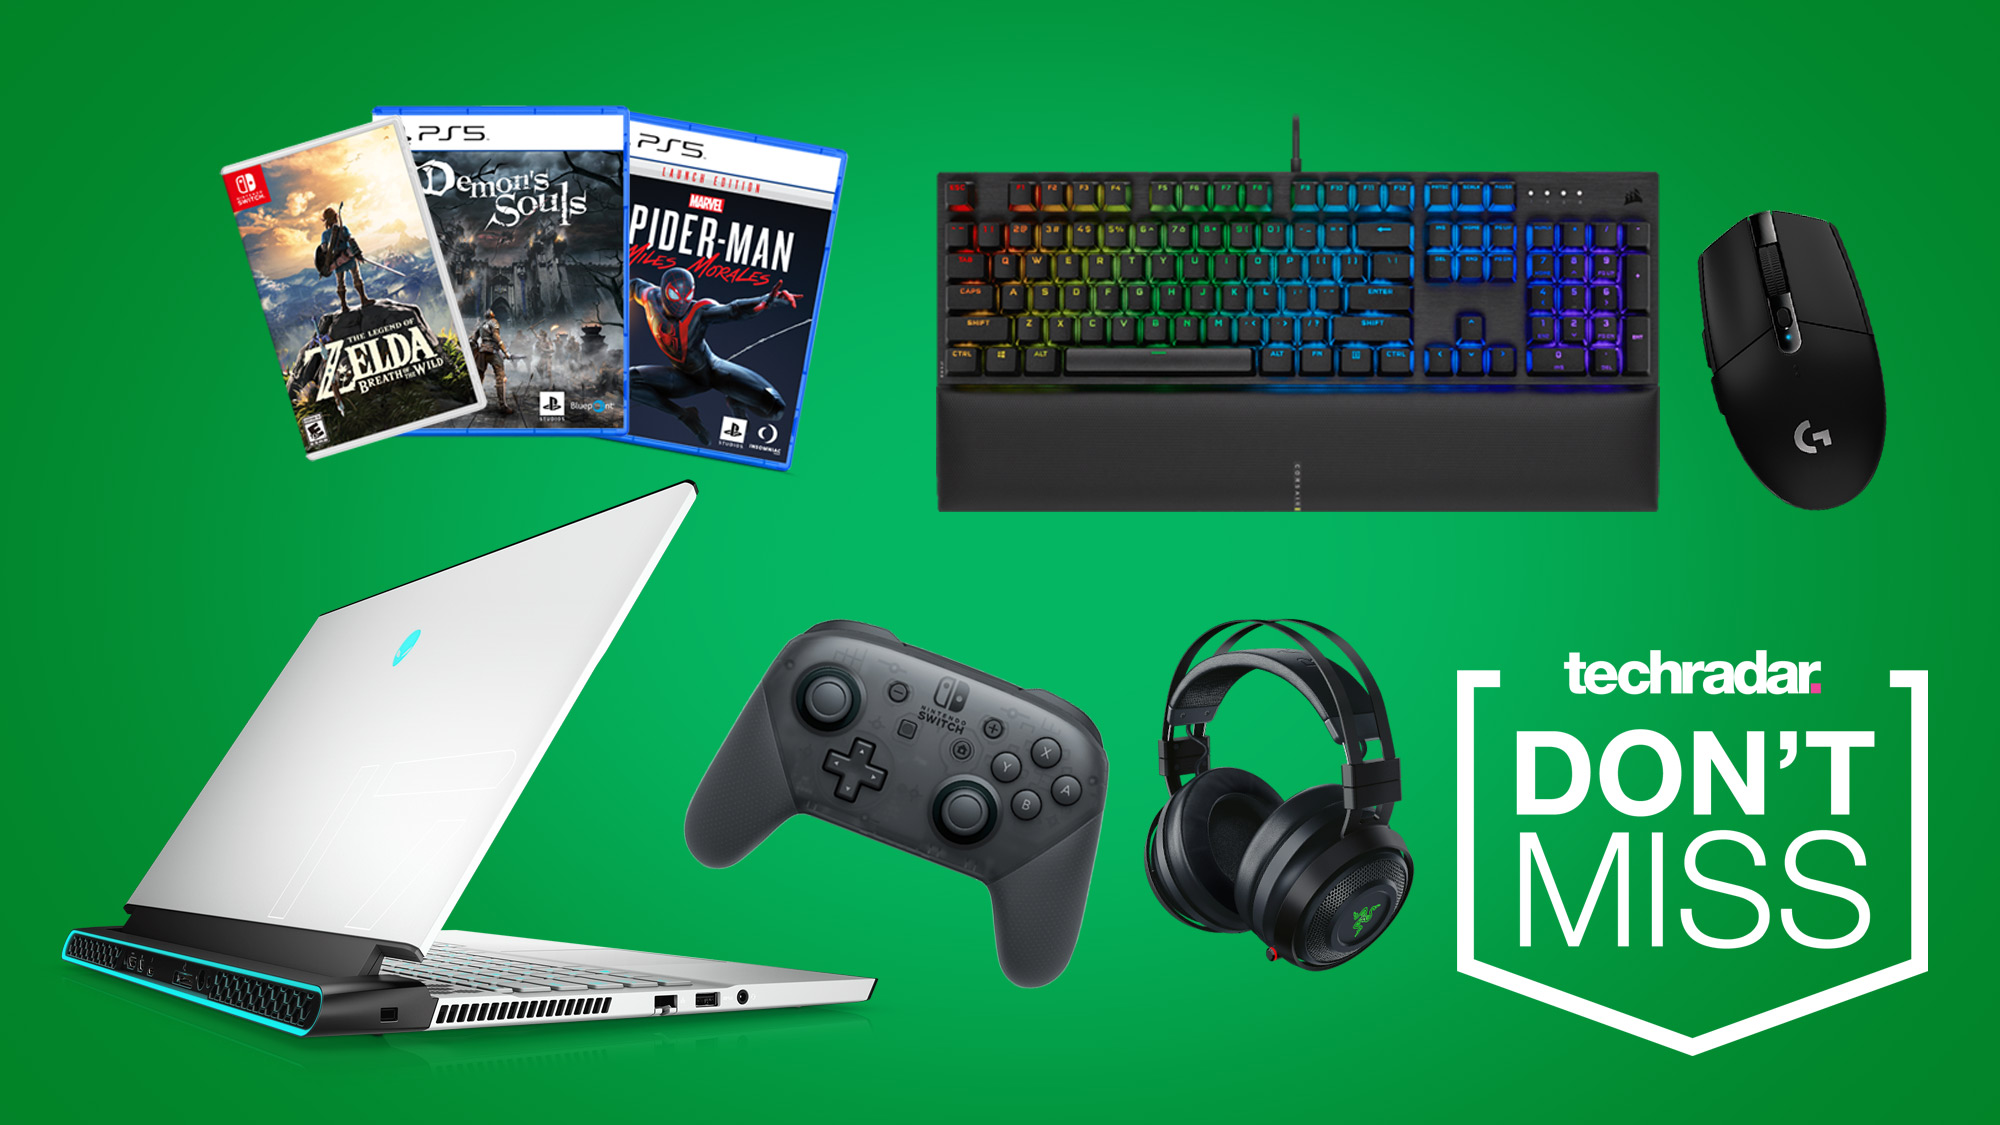 the-20-best-gaming-deals-in-the-memorial-day-sales:-save-on-ps5,-xbox,-switch,-and-pc